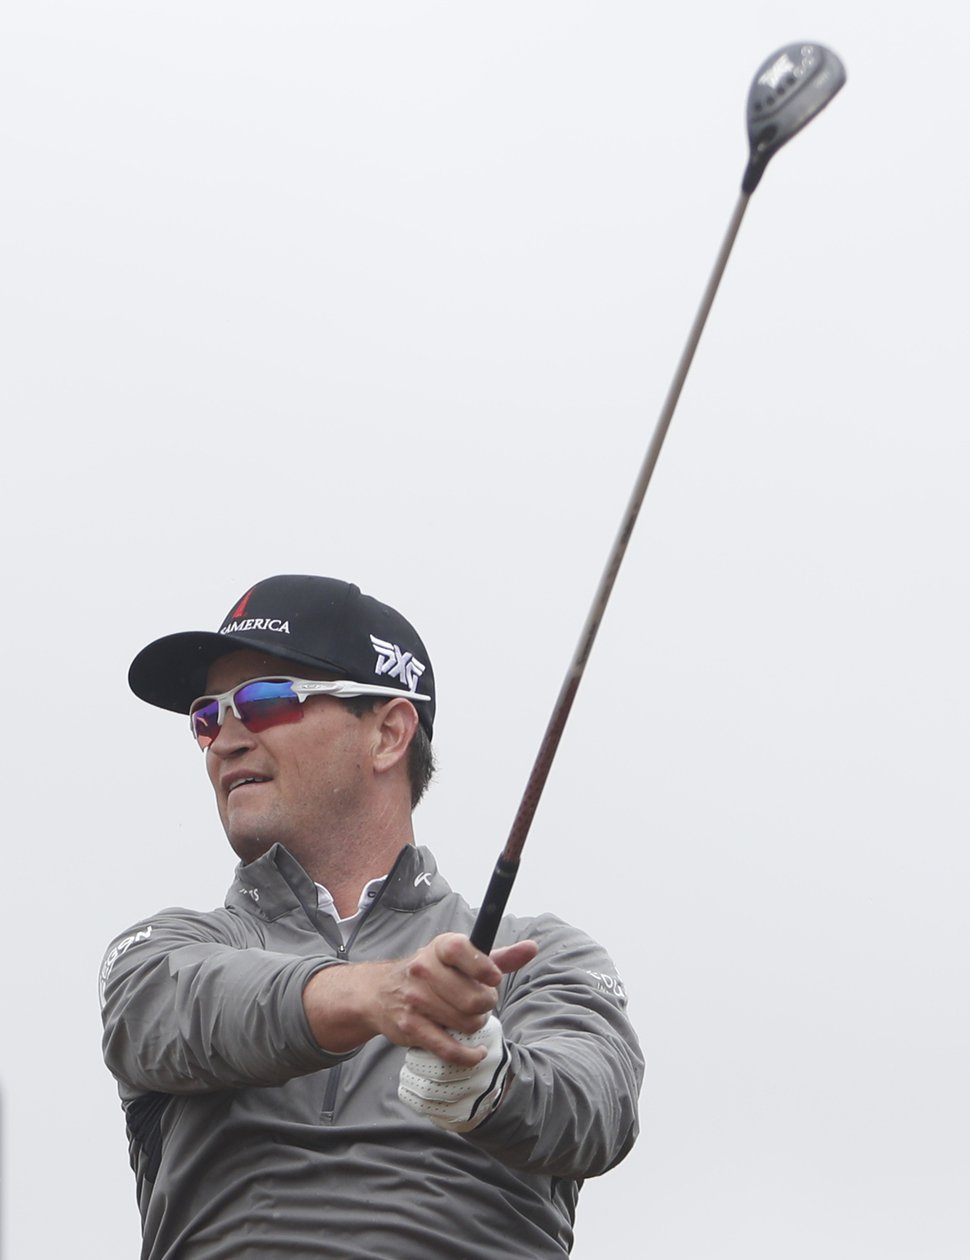 Two-time major winner Zach Johnson of Iowa plays off the 17th tee during the second round of the British Open Golf Championship in Carnoustie, Scotland, Friday July 20, 2018. (AP Photo/Alastair Grant)